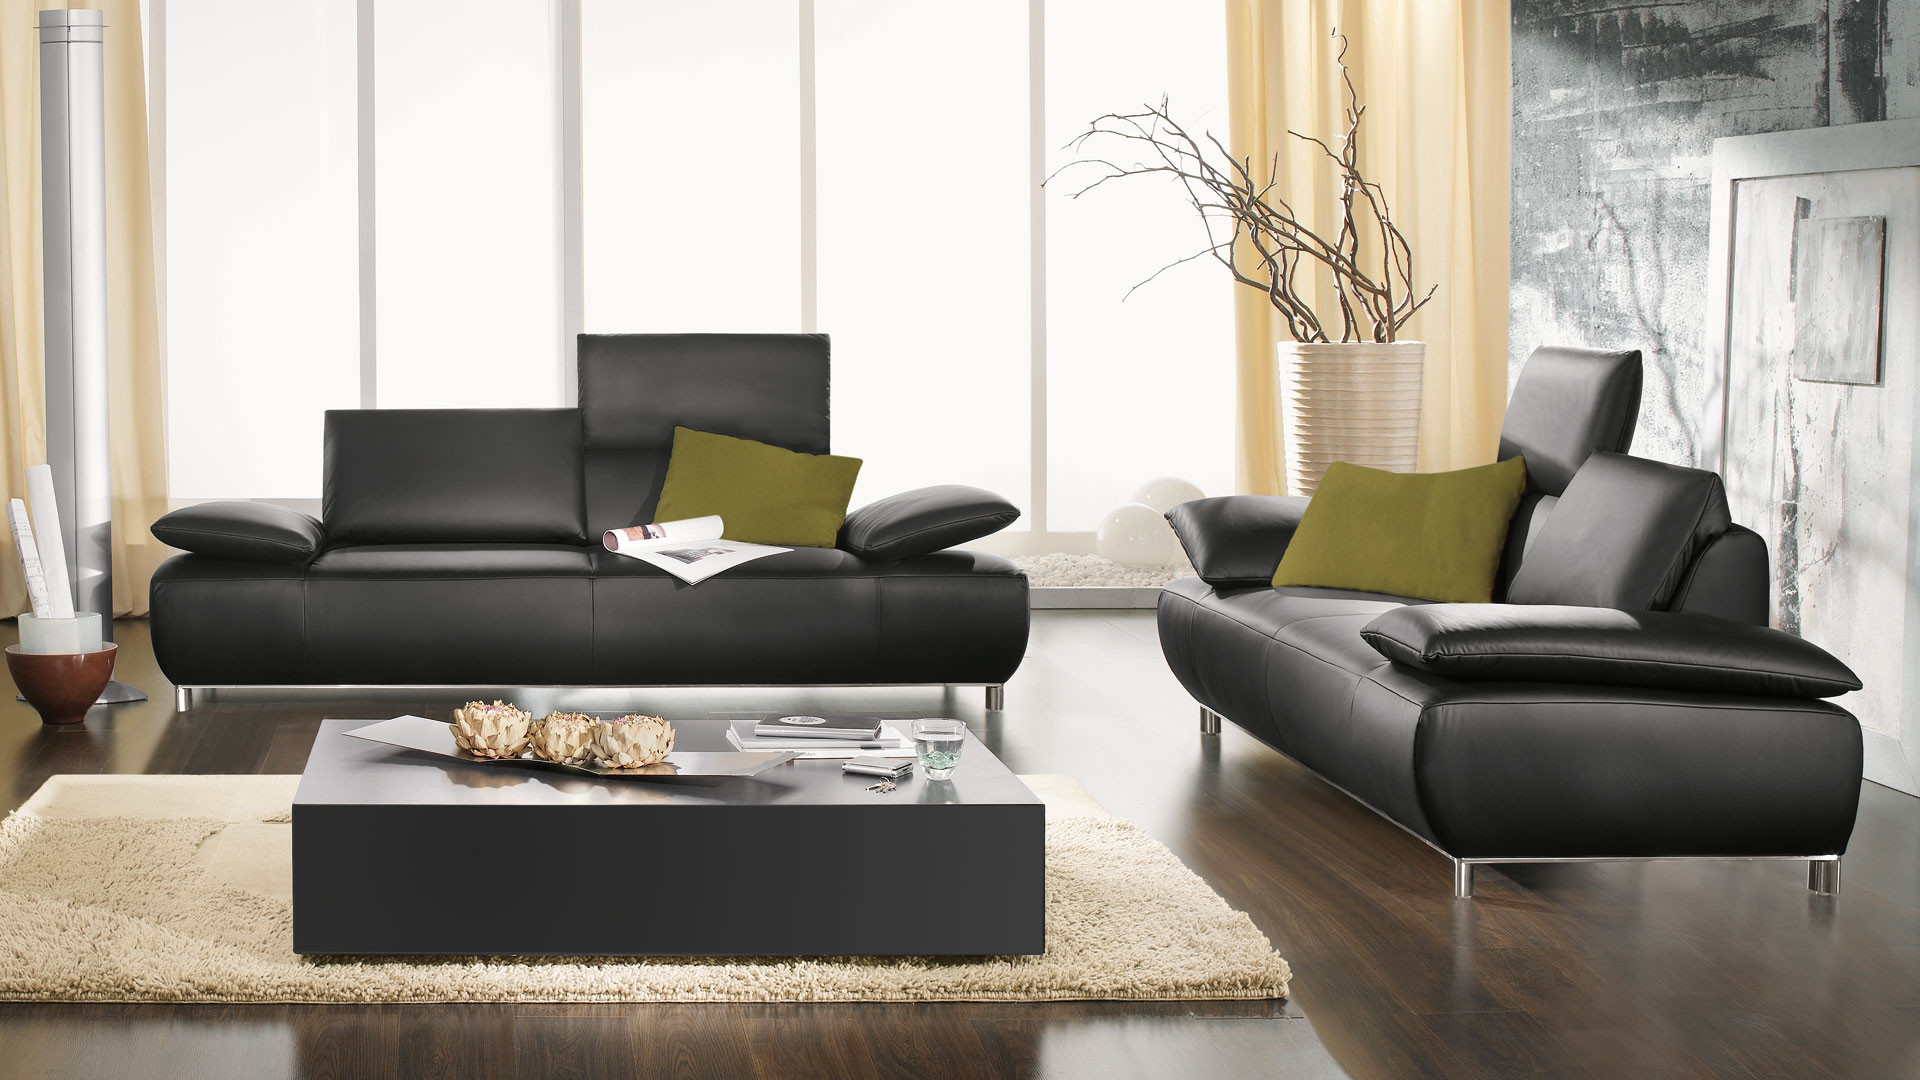 koinor volare sofa uk 39 s top bar restaurant furniture store. Black Bedroom Furniture Sets. Home Design Ideas